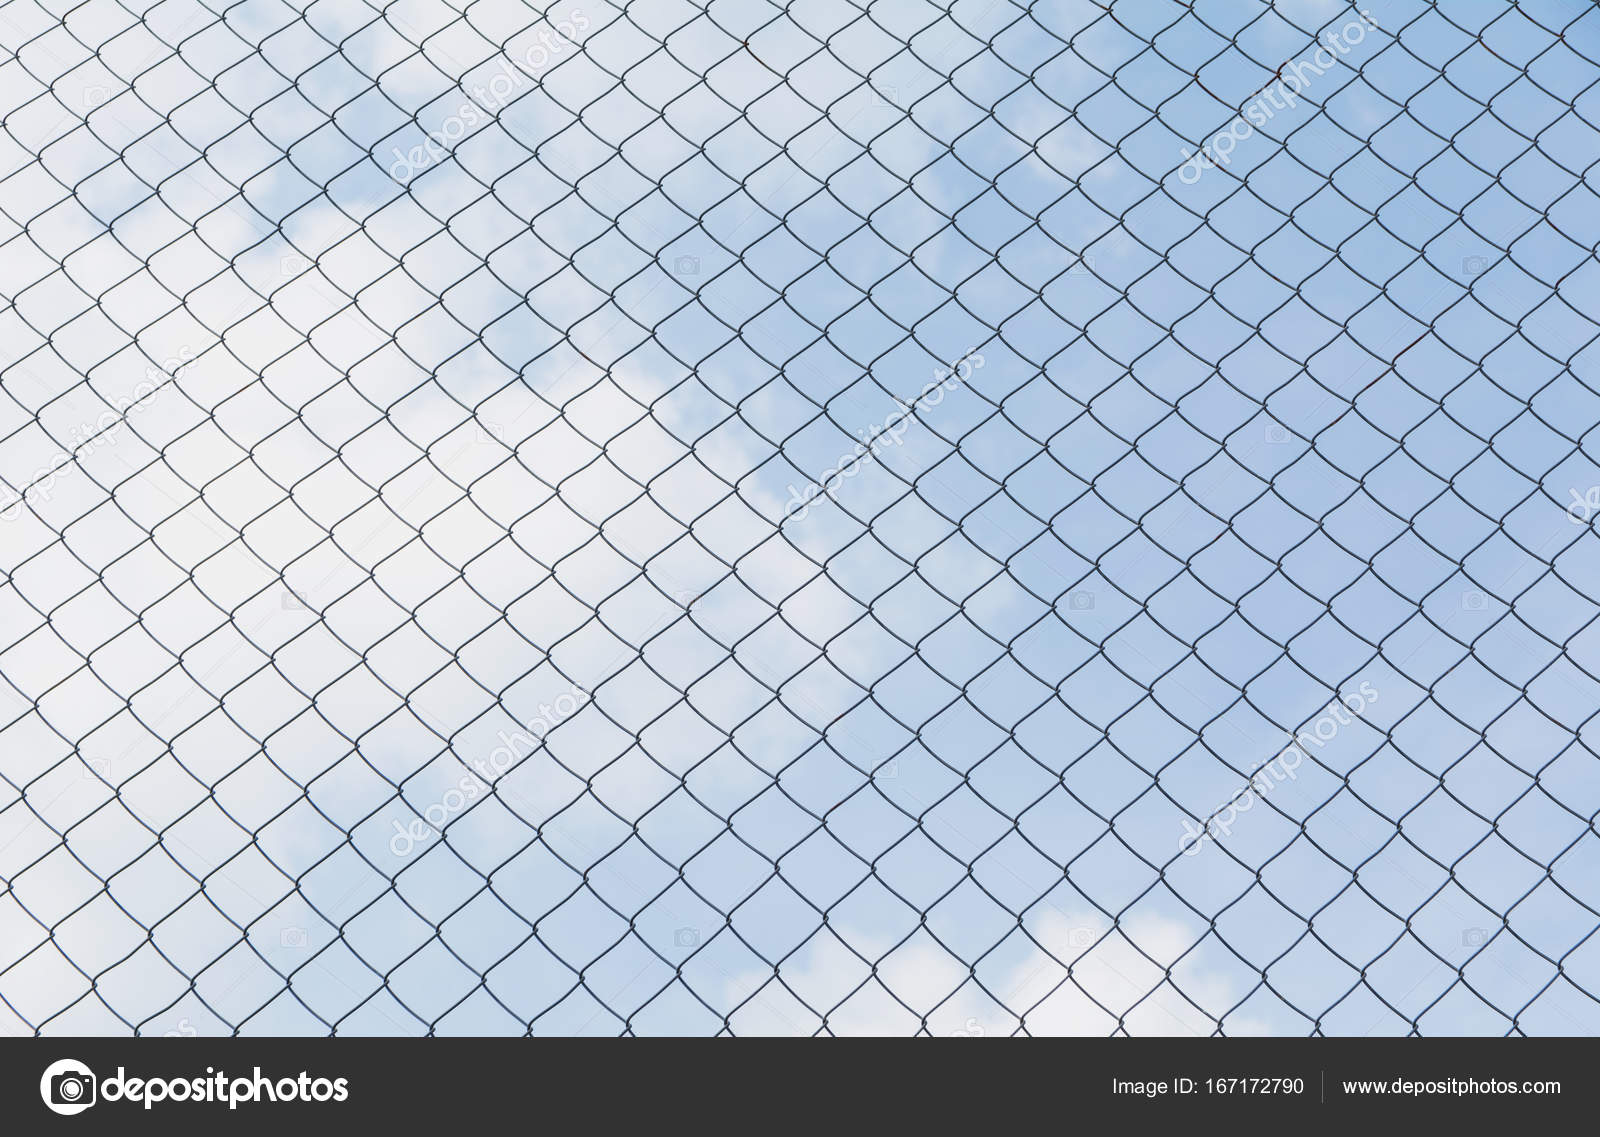 Rusty chain link fence under the sky background Abstract closeup of